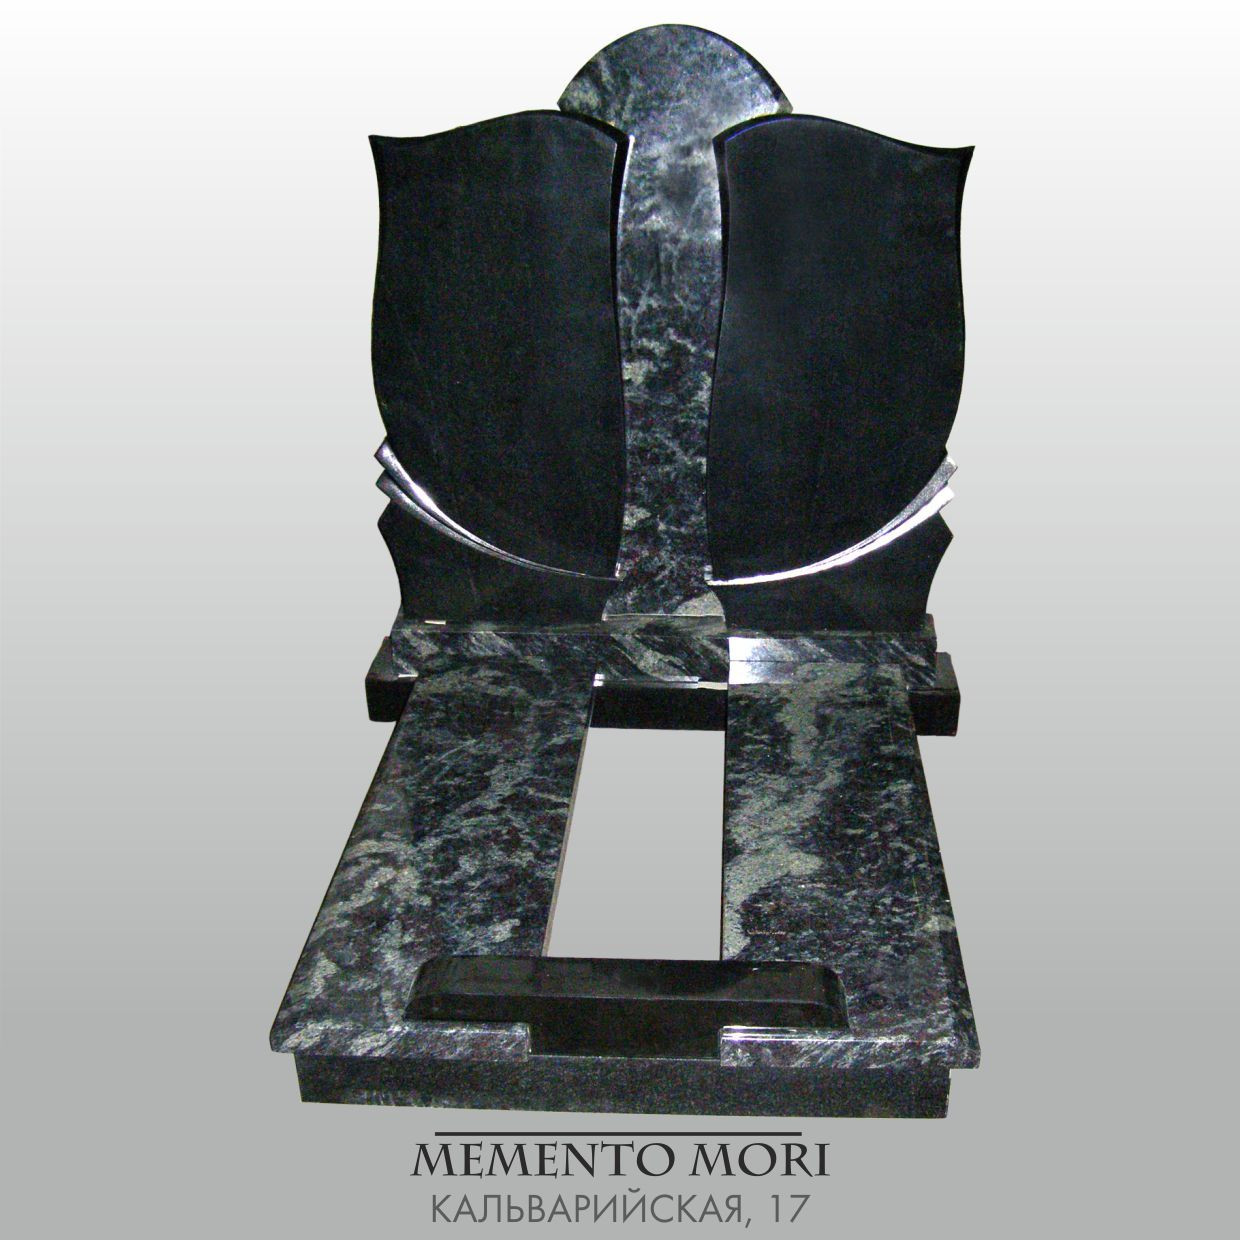 granite cemetery vases suppliers of dŸdd¼nn'd½d¸dod¸ d¸d· d³n€dd½d¸n'd d¤d¾n'd¾ d¸ d¦dµd½n‹ dšn pertaining to explore these ideas and more